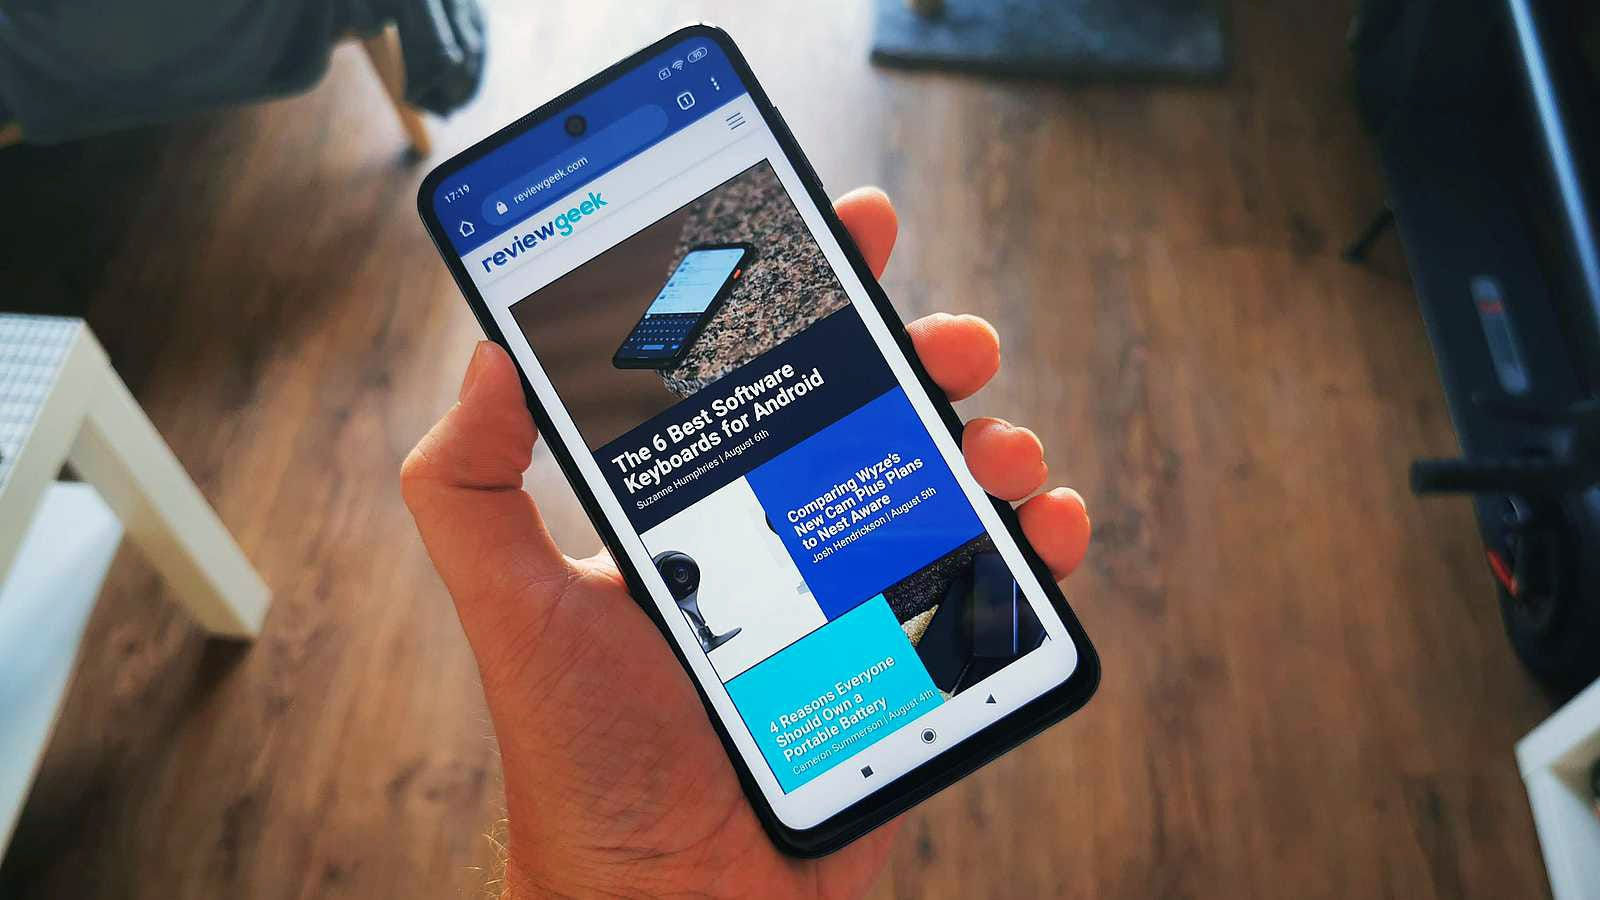 redmi note 9 pro displaying review geek website